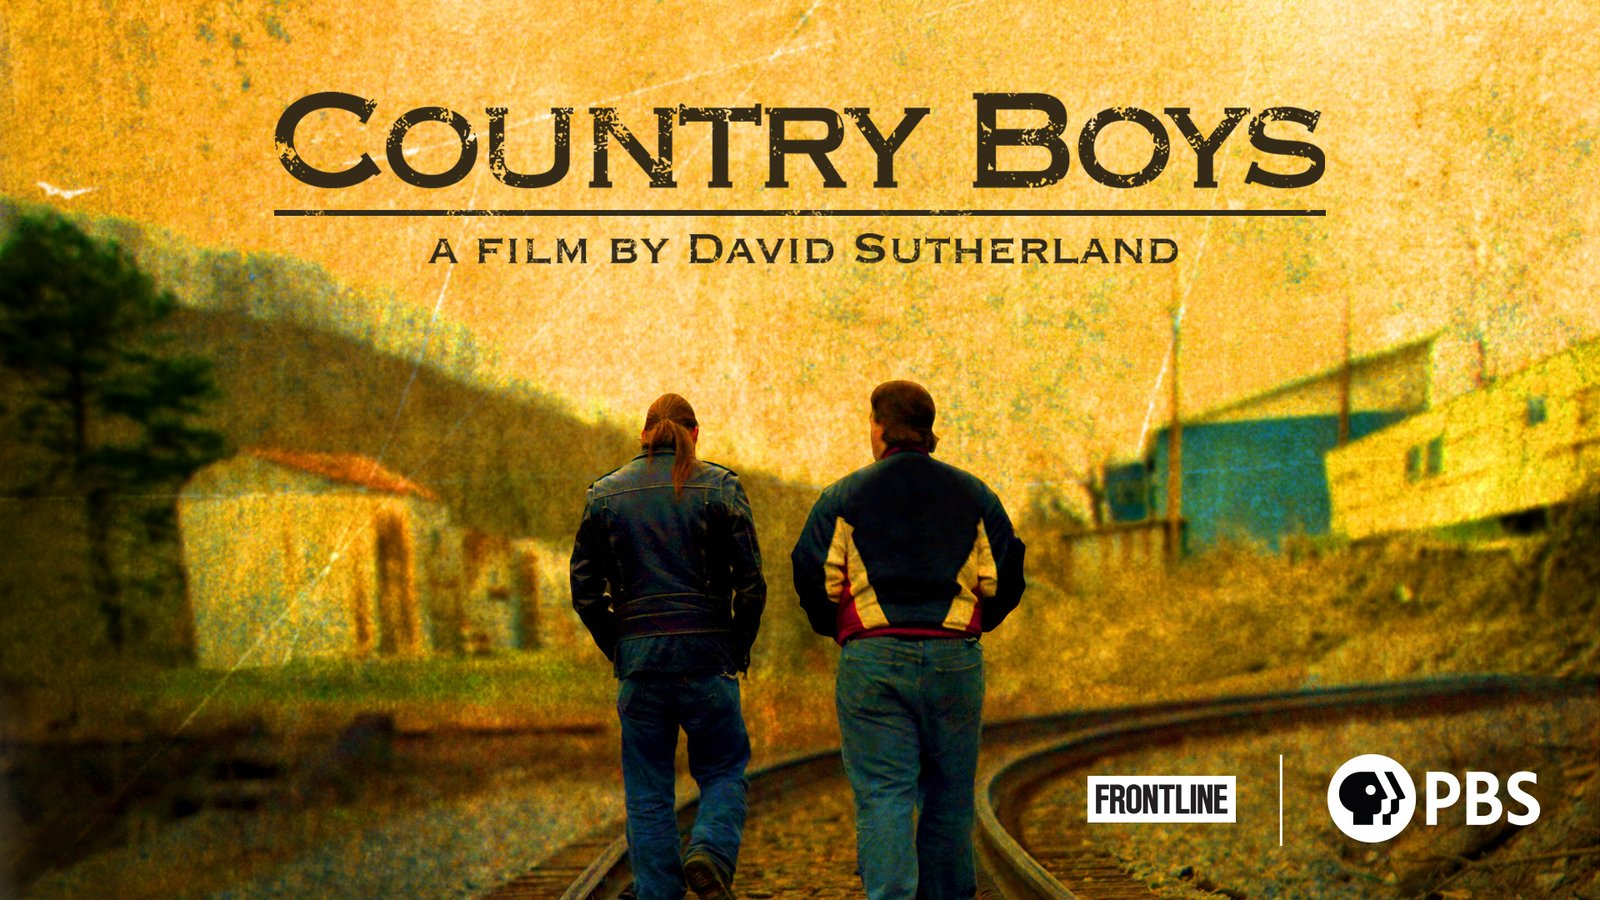 FRONTLINE - Country Boys